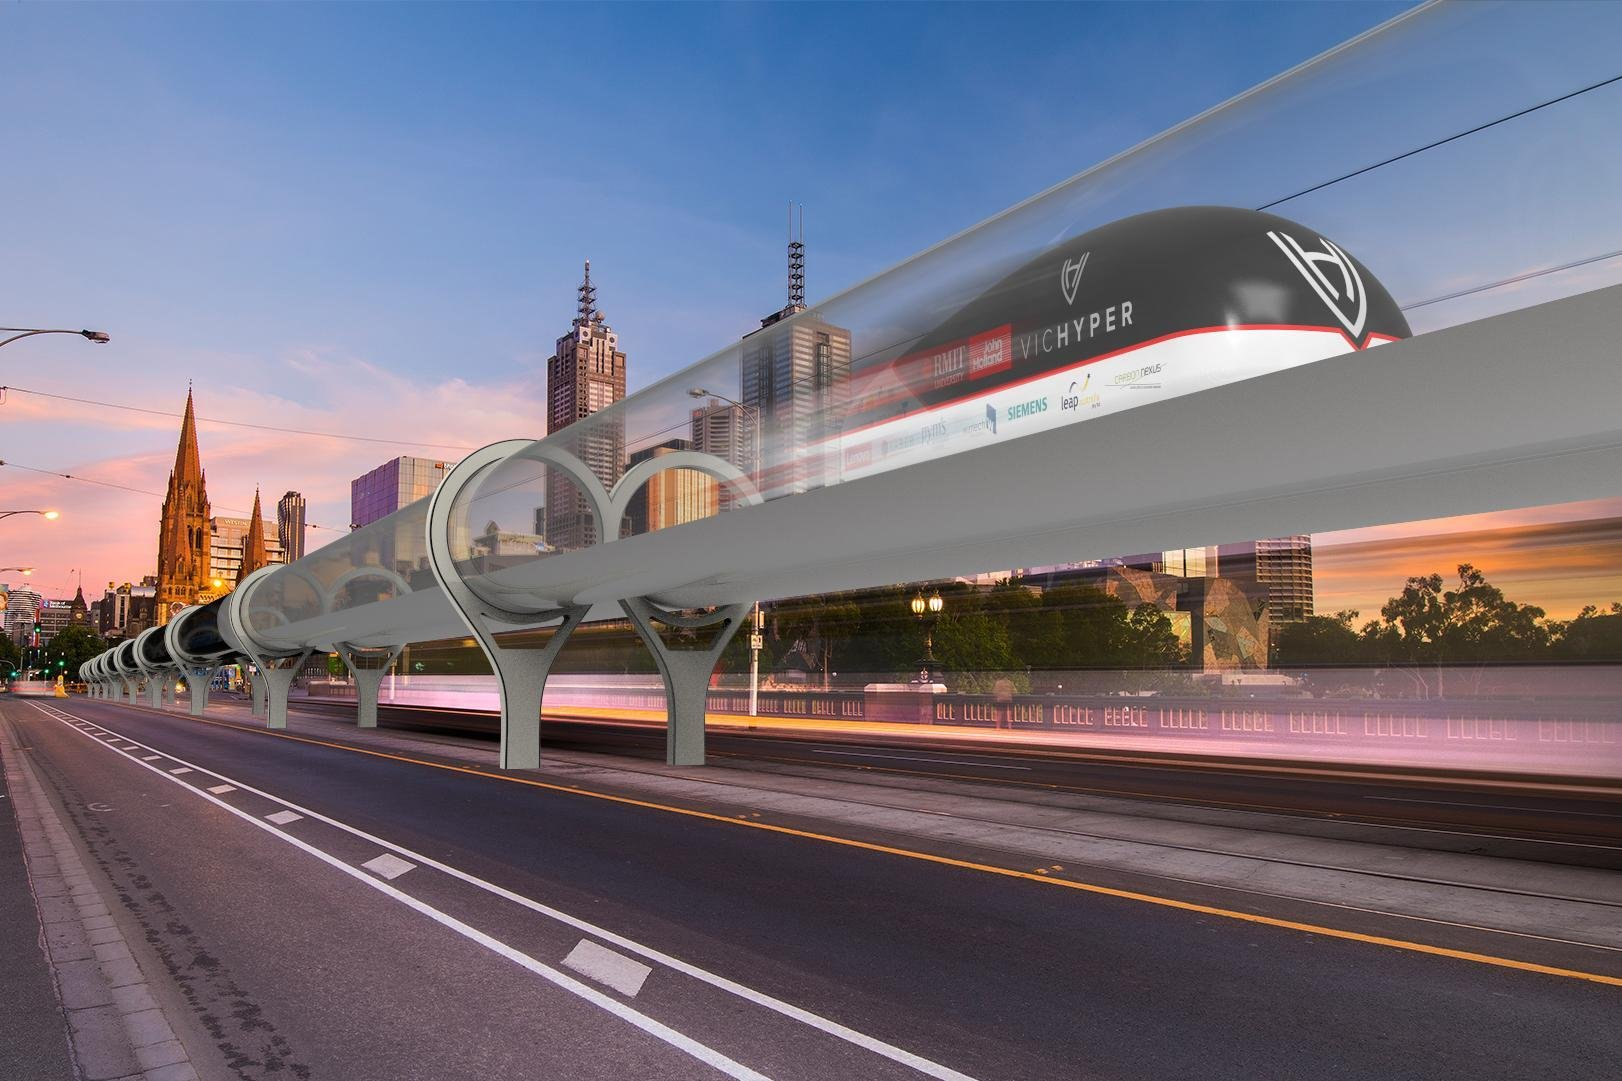 an-artist-s-impression-of-the-vichyper-hyperloop-transport-solution.jpg